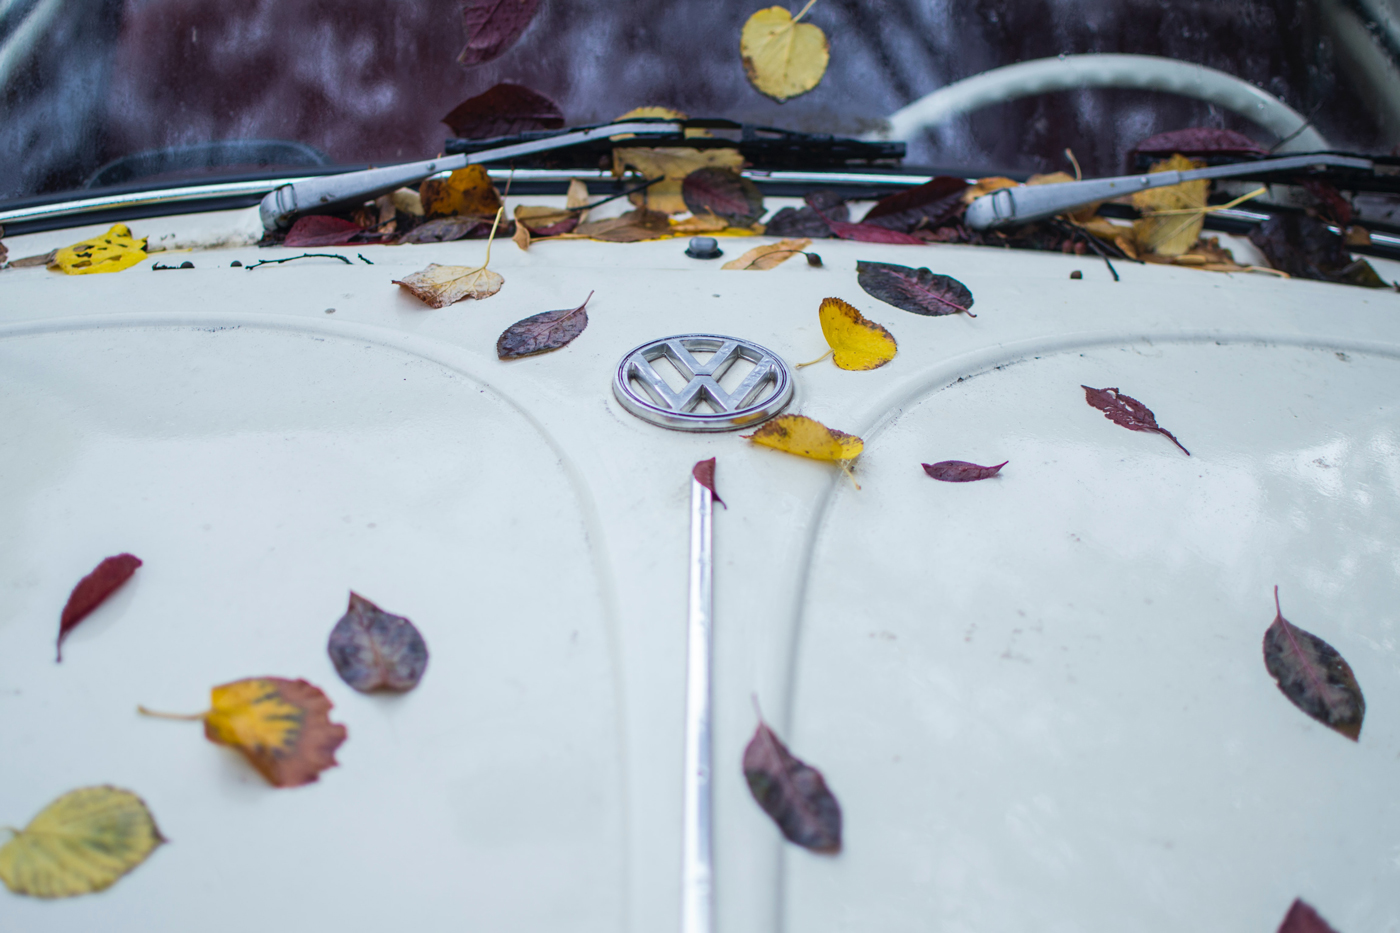 A white VW Beetle bonnet with autumn leaves scattered over it